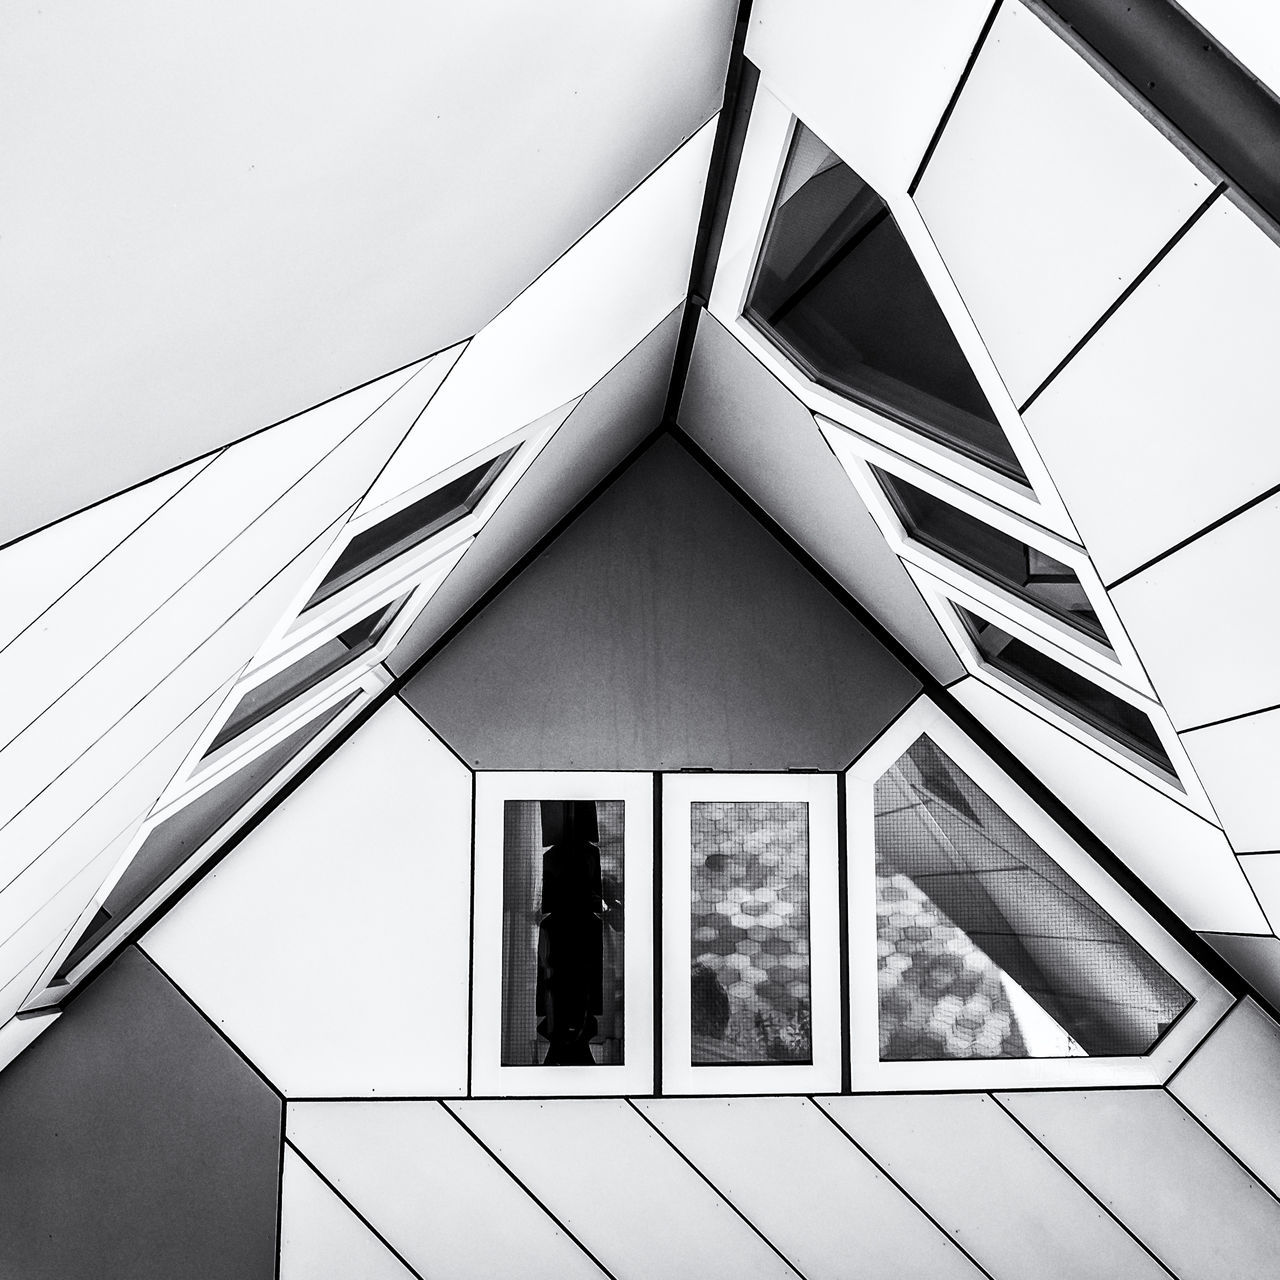 Detail of a Cube house in bnw Abstraction Architecture Black & White Black And White Black And White Photography Blackandwhite Blackandwhite Photography Blackandwhitephotography Building Exterior Built Structure Cube Houses Low Angle View Modern No People Squarecrop Window